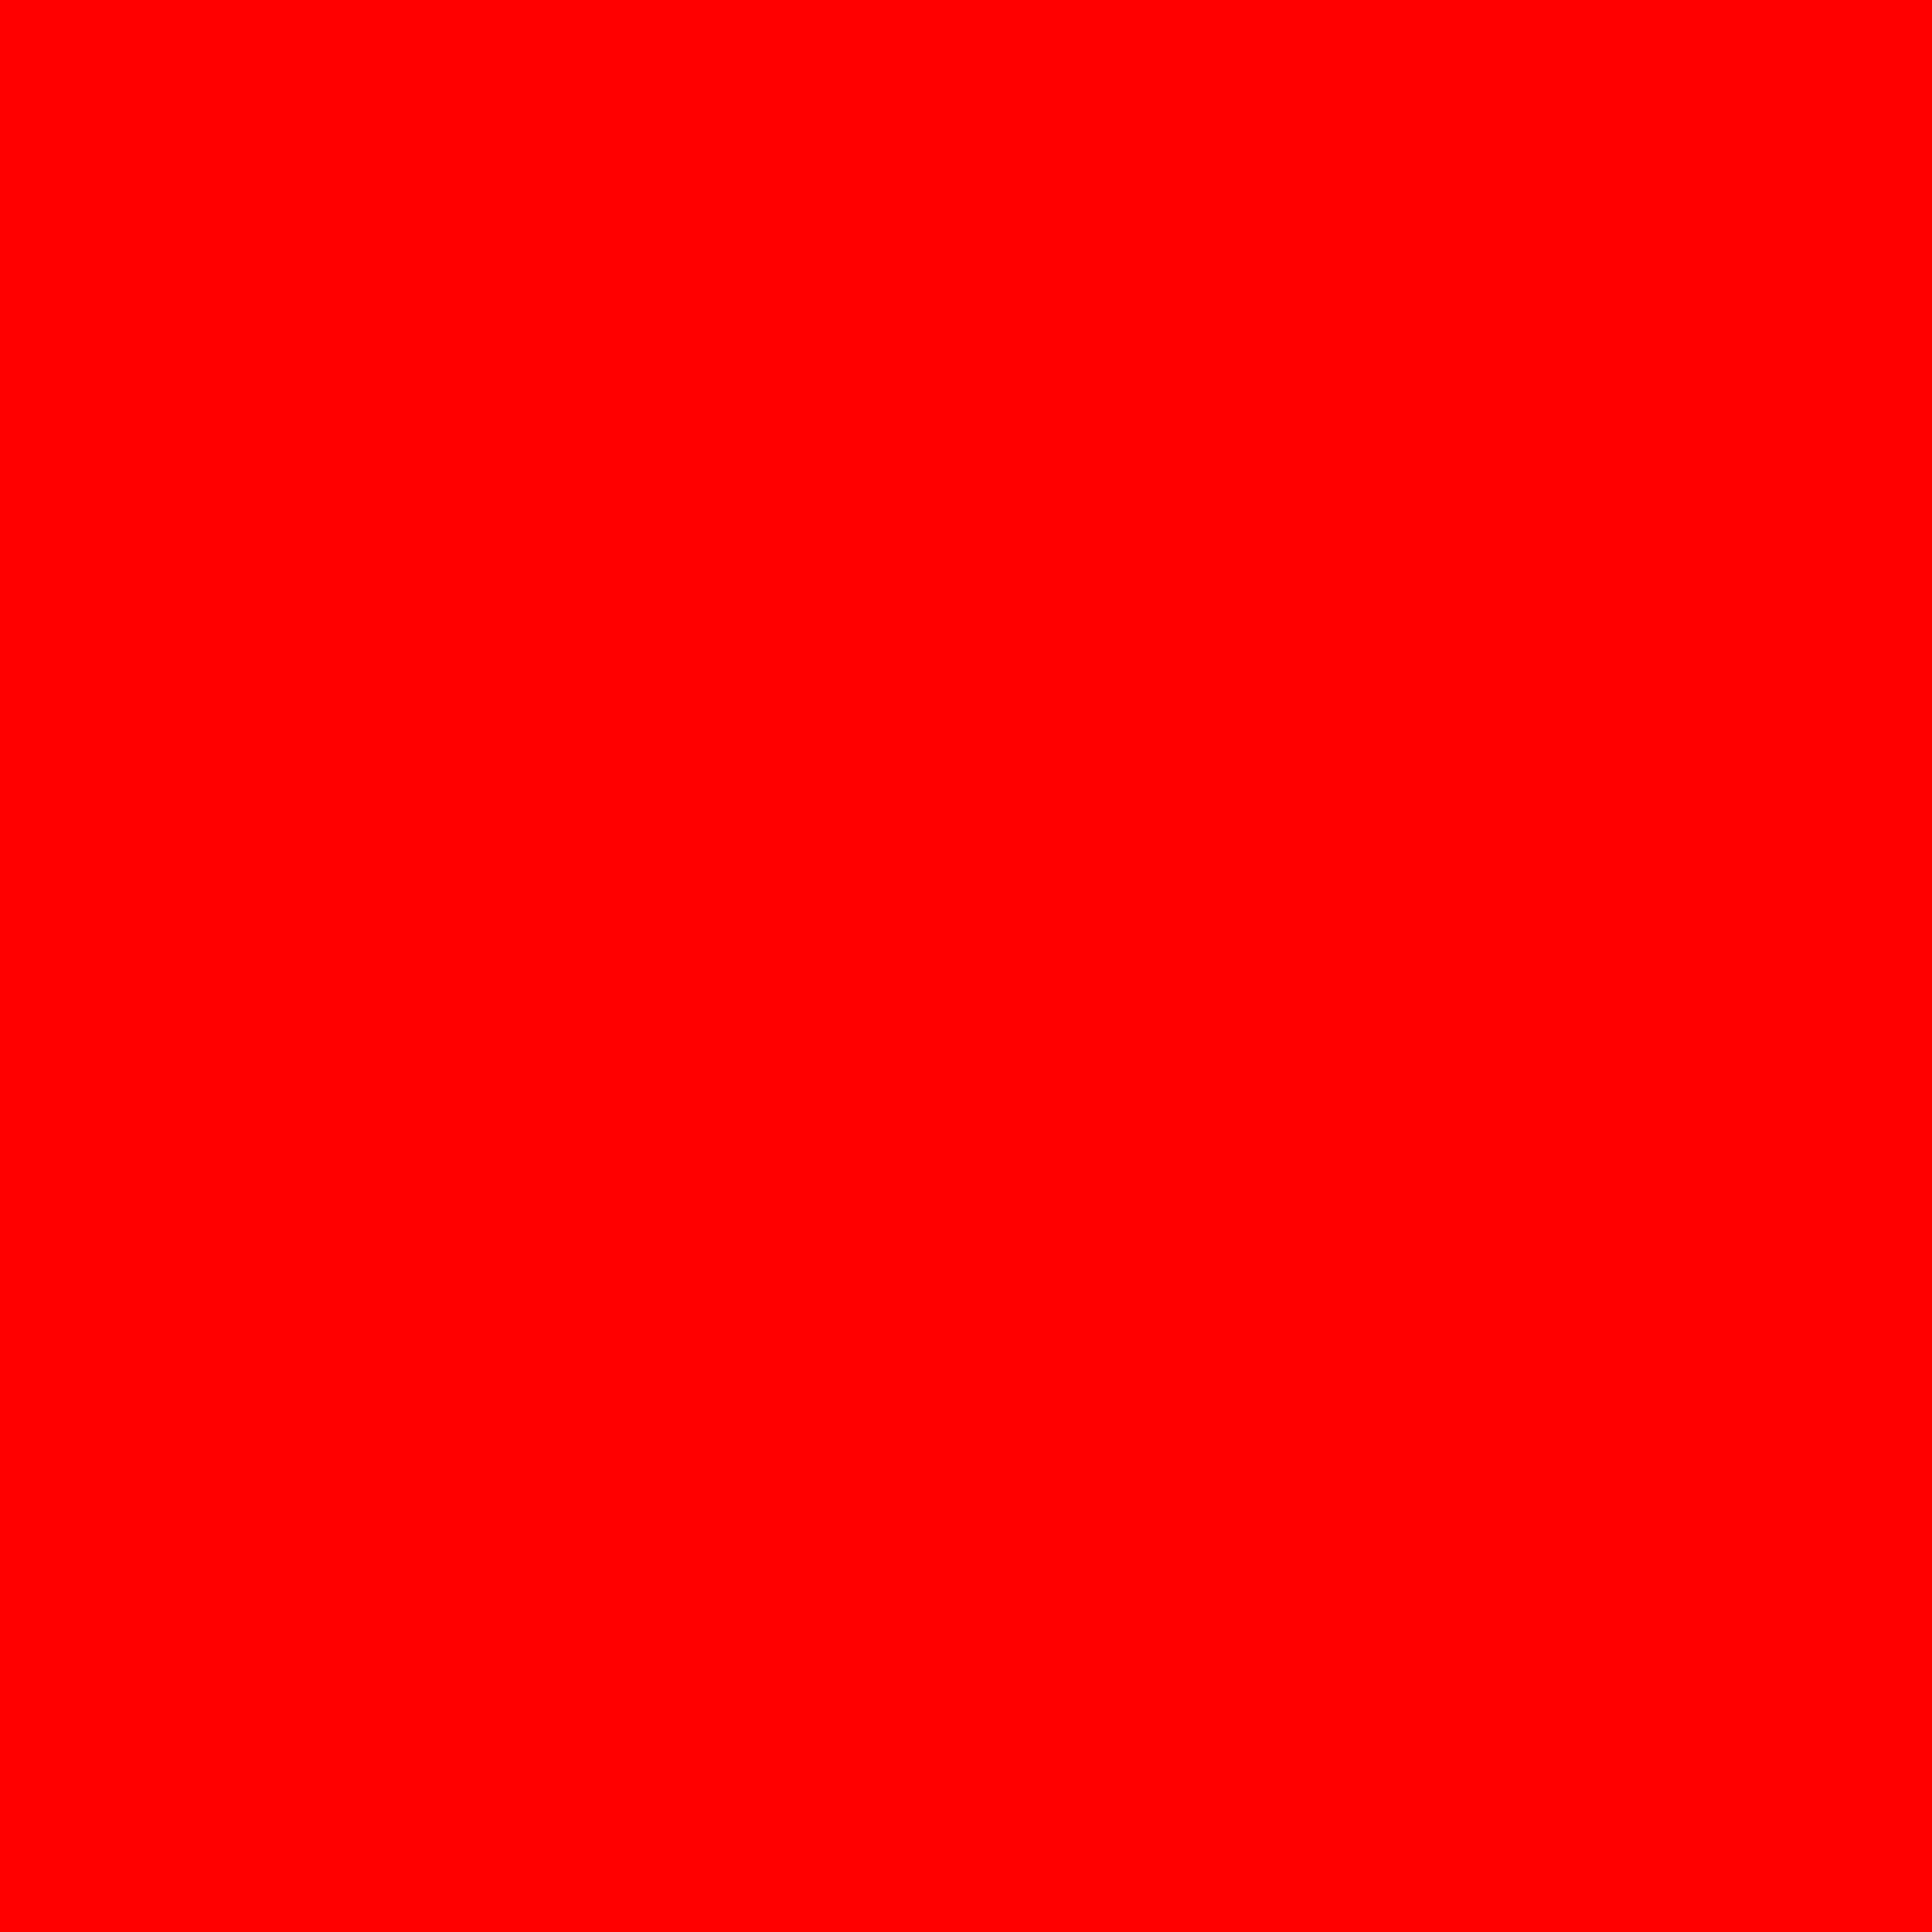 Images of Red | 2000x2000